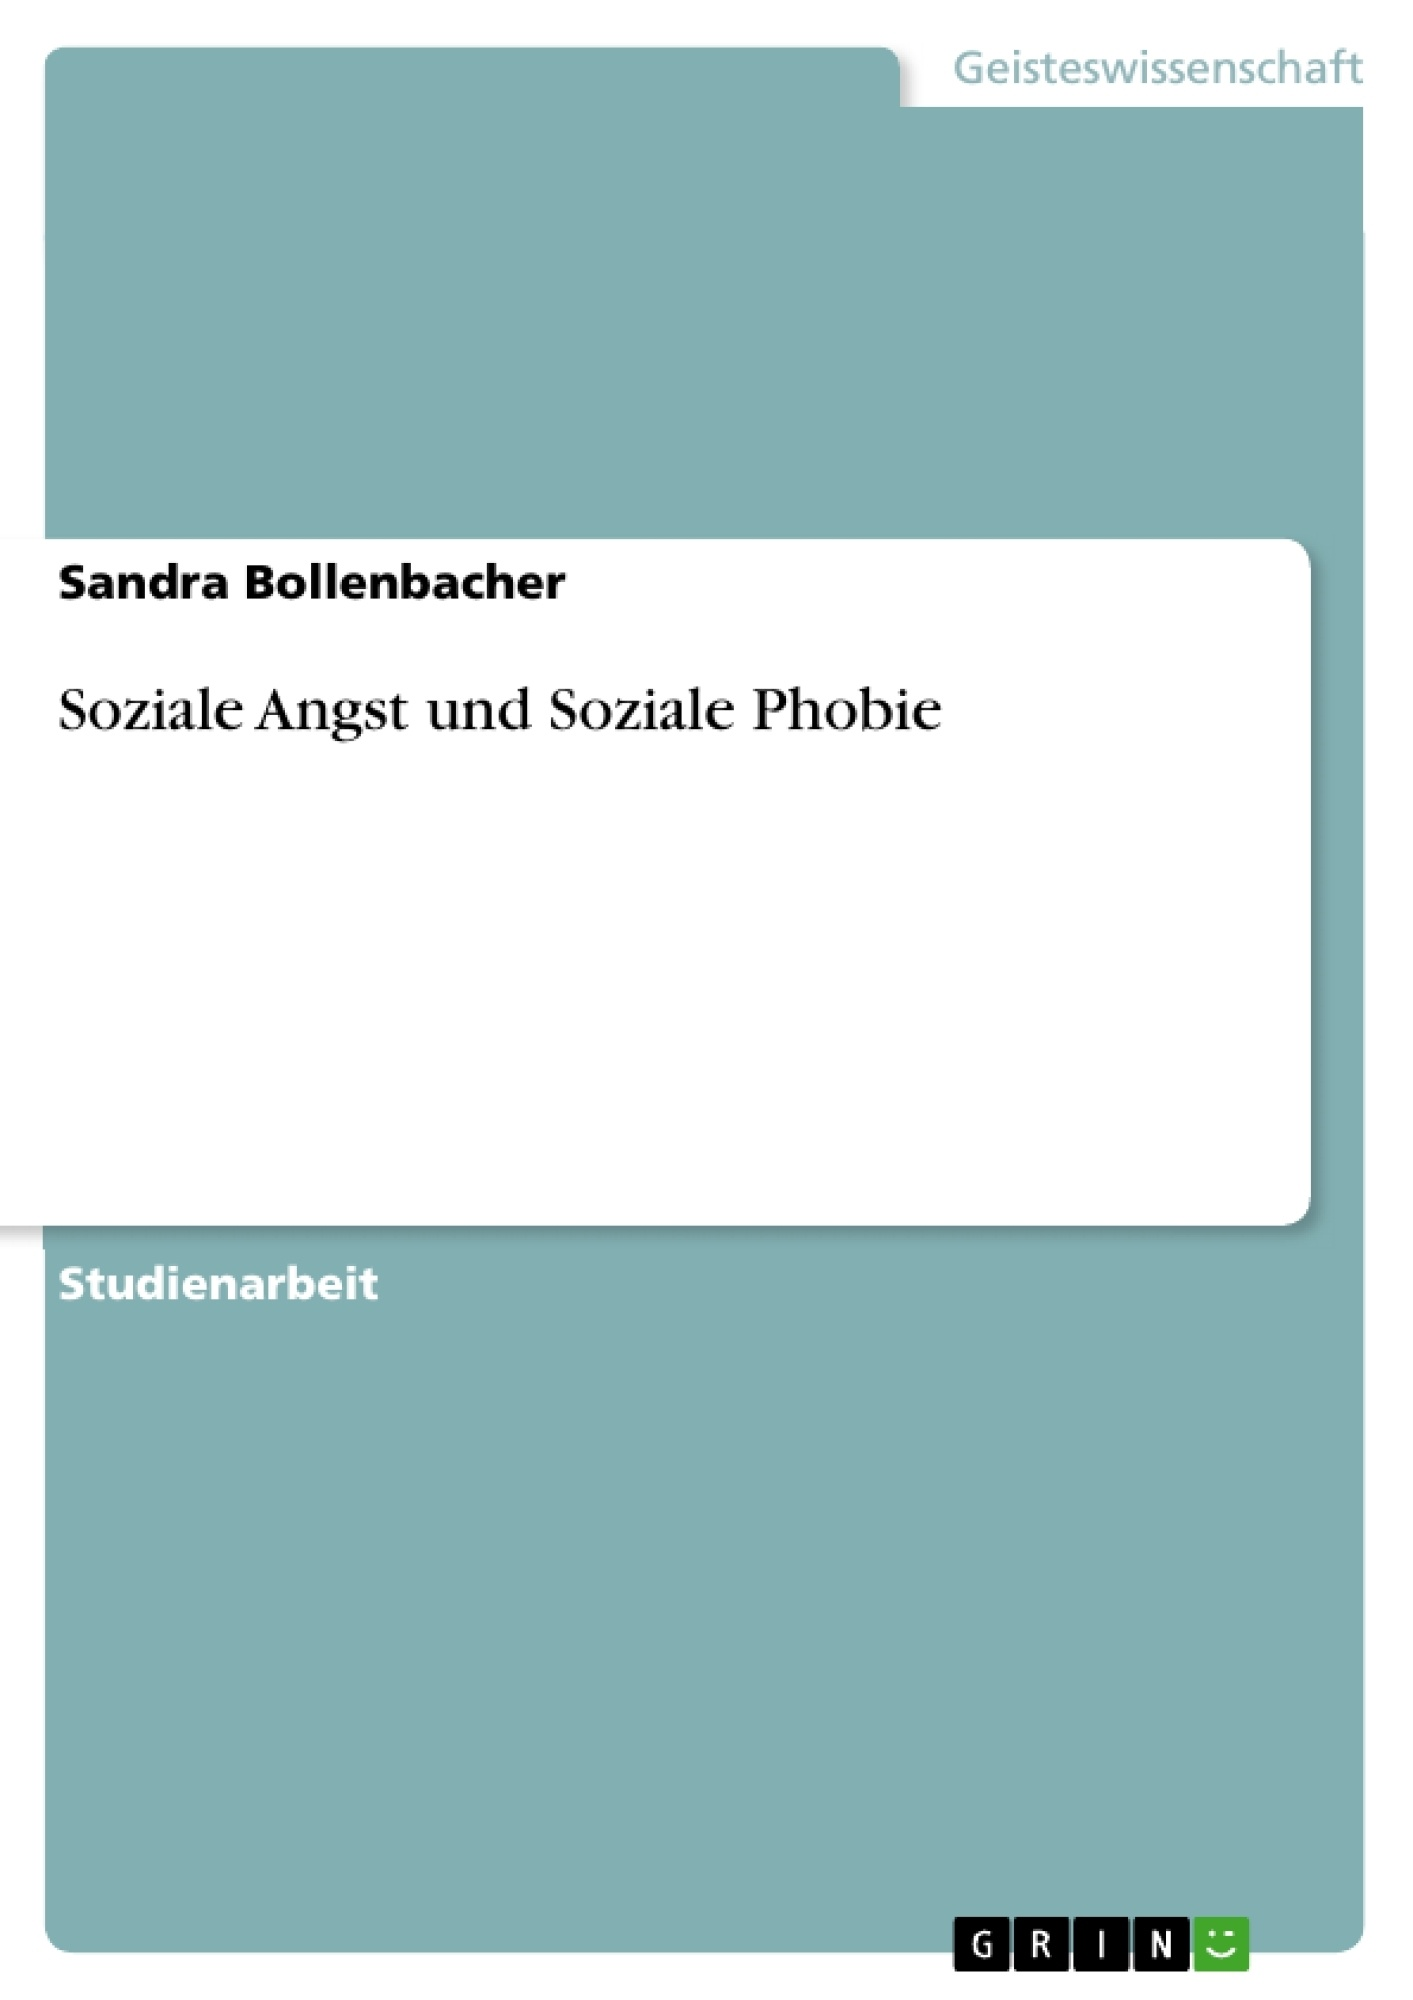 Dating-Website soziale Angst